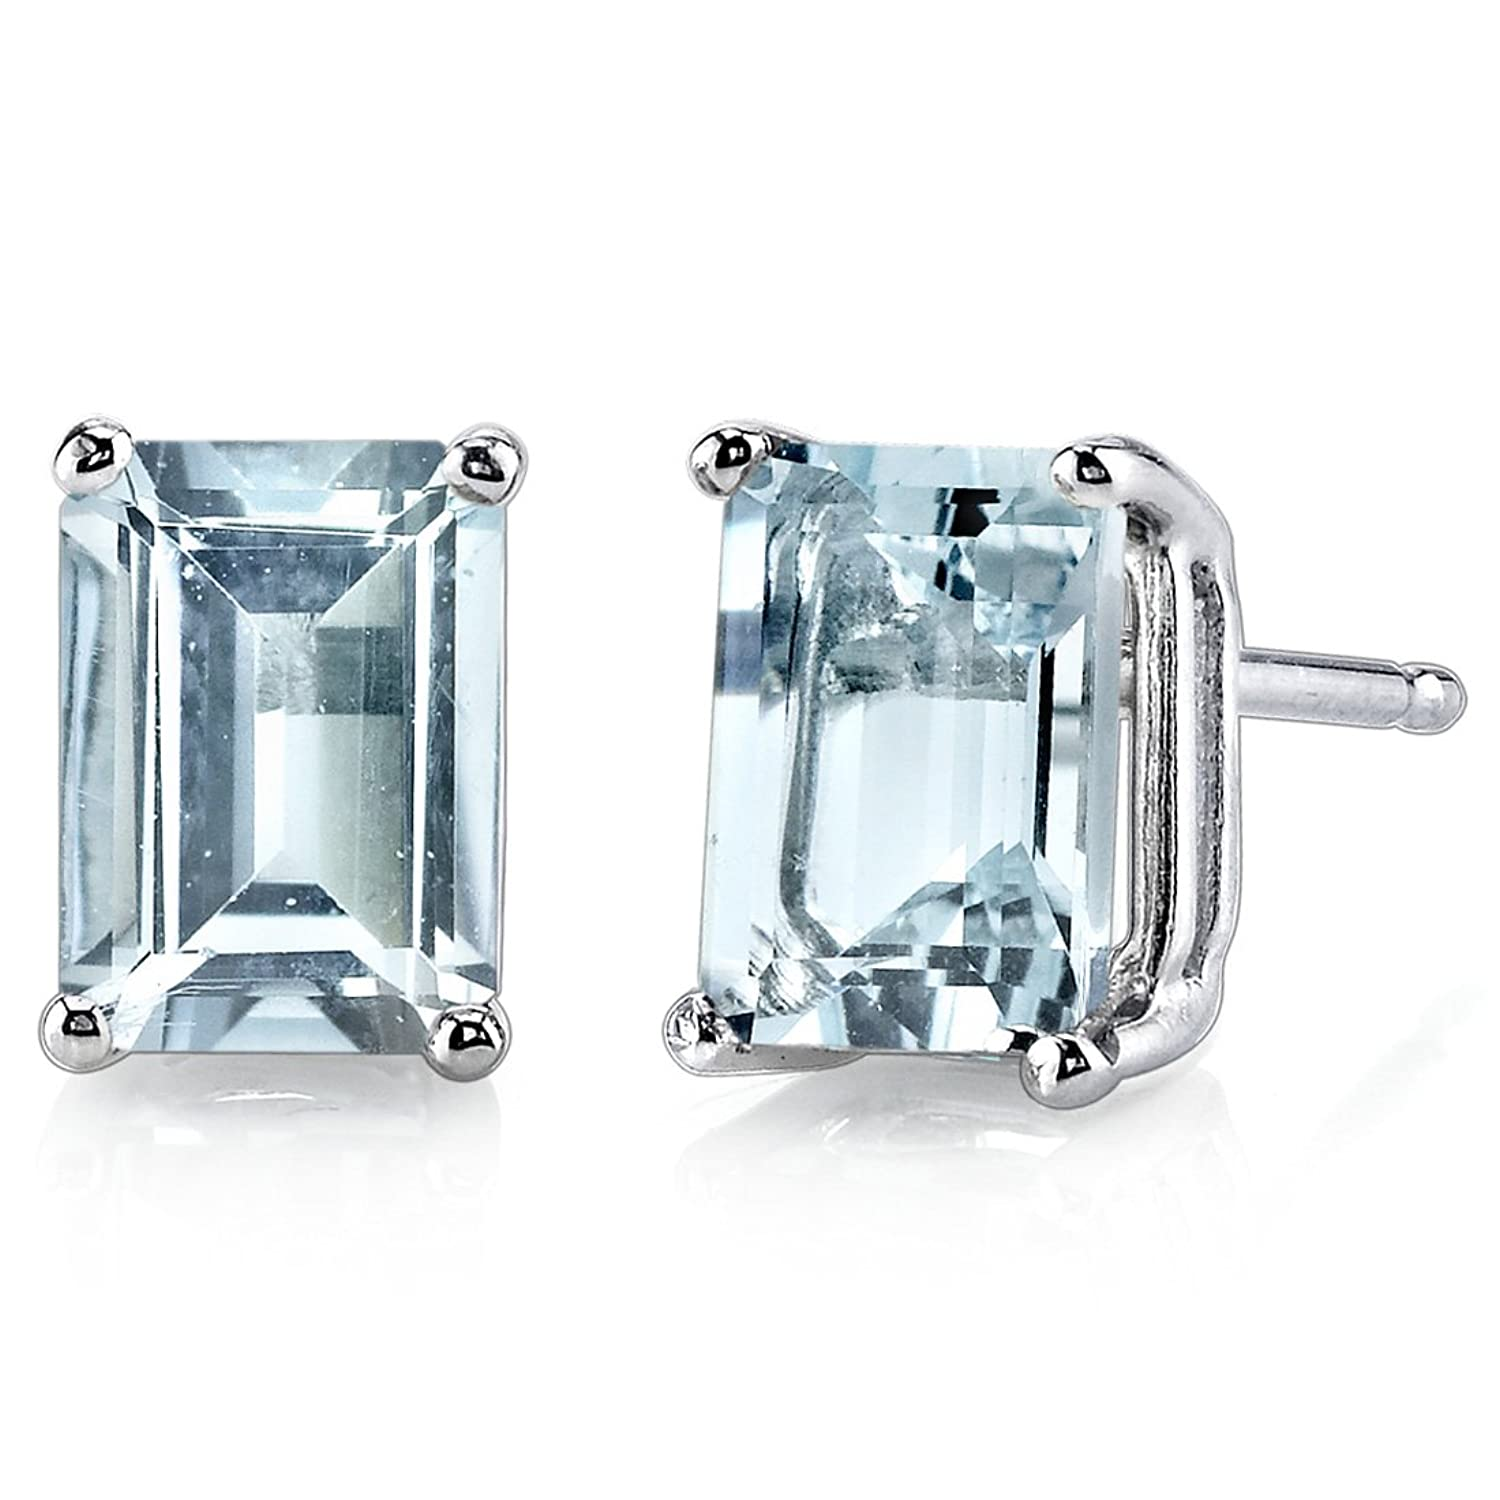 aquamarine emerald karat carat white cut earrings ice amazon com gold jewelry dp carats stud